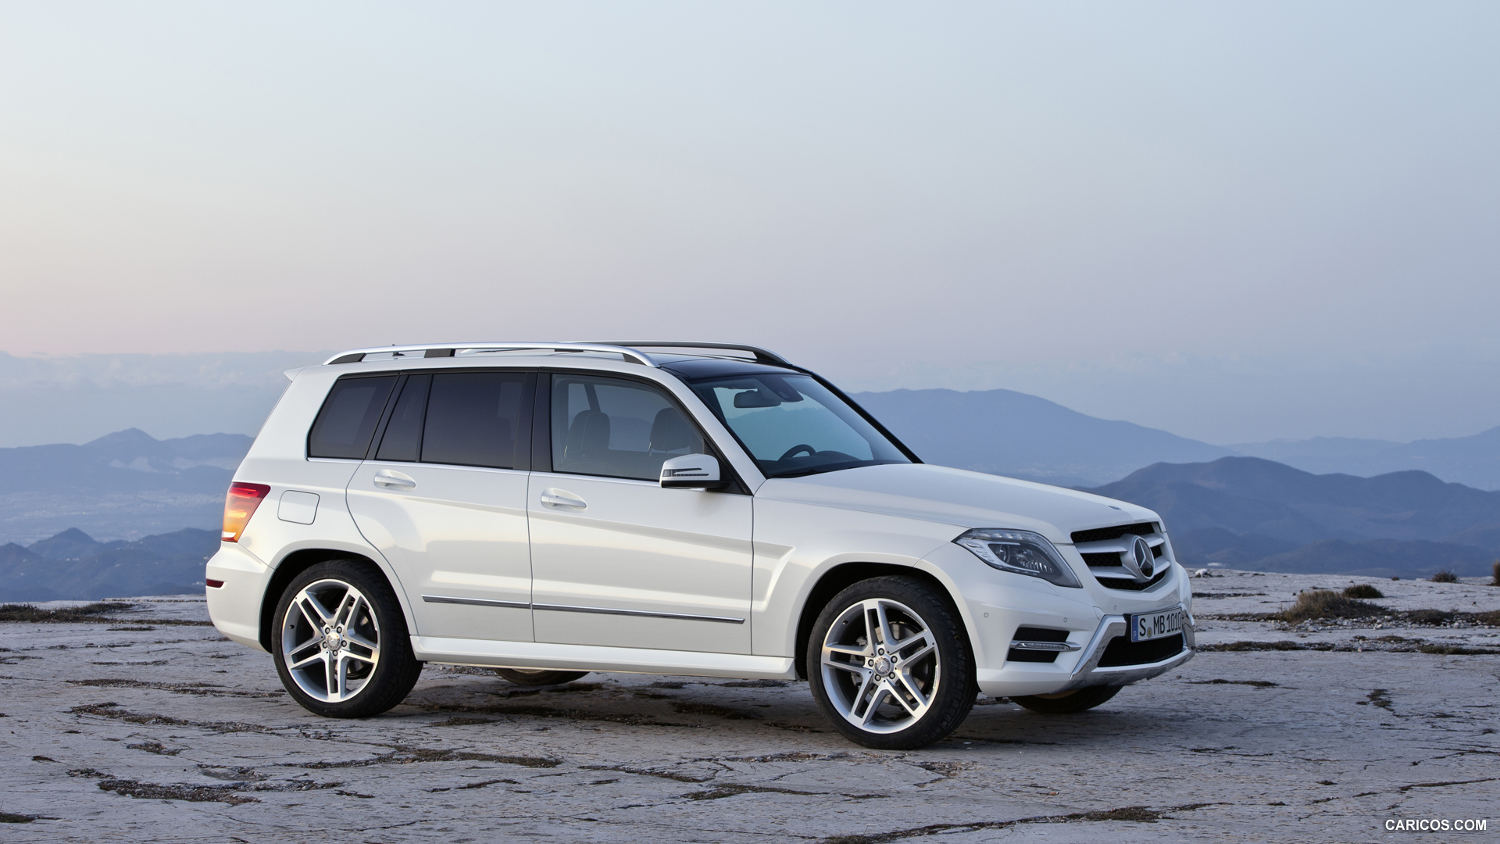 Comparison mercedes benz glk class glk350 vs for Mercedes benz glk class